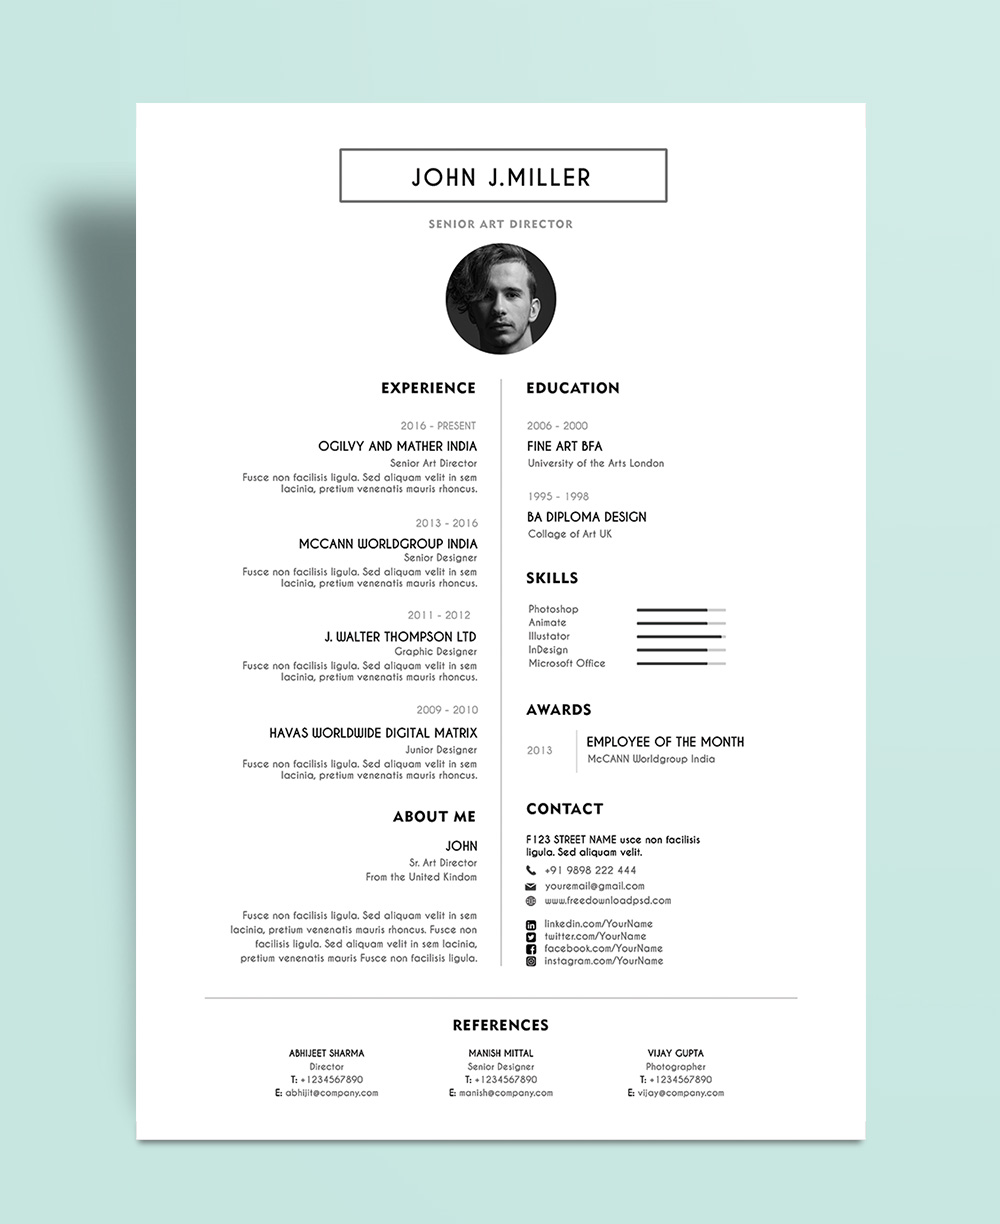 Free Simple & Minimal Layout Resume (CV) Design Template PSD File (1)